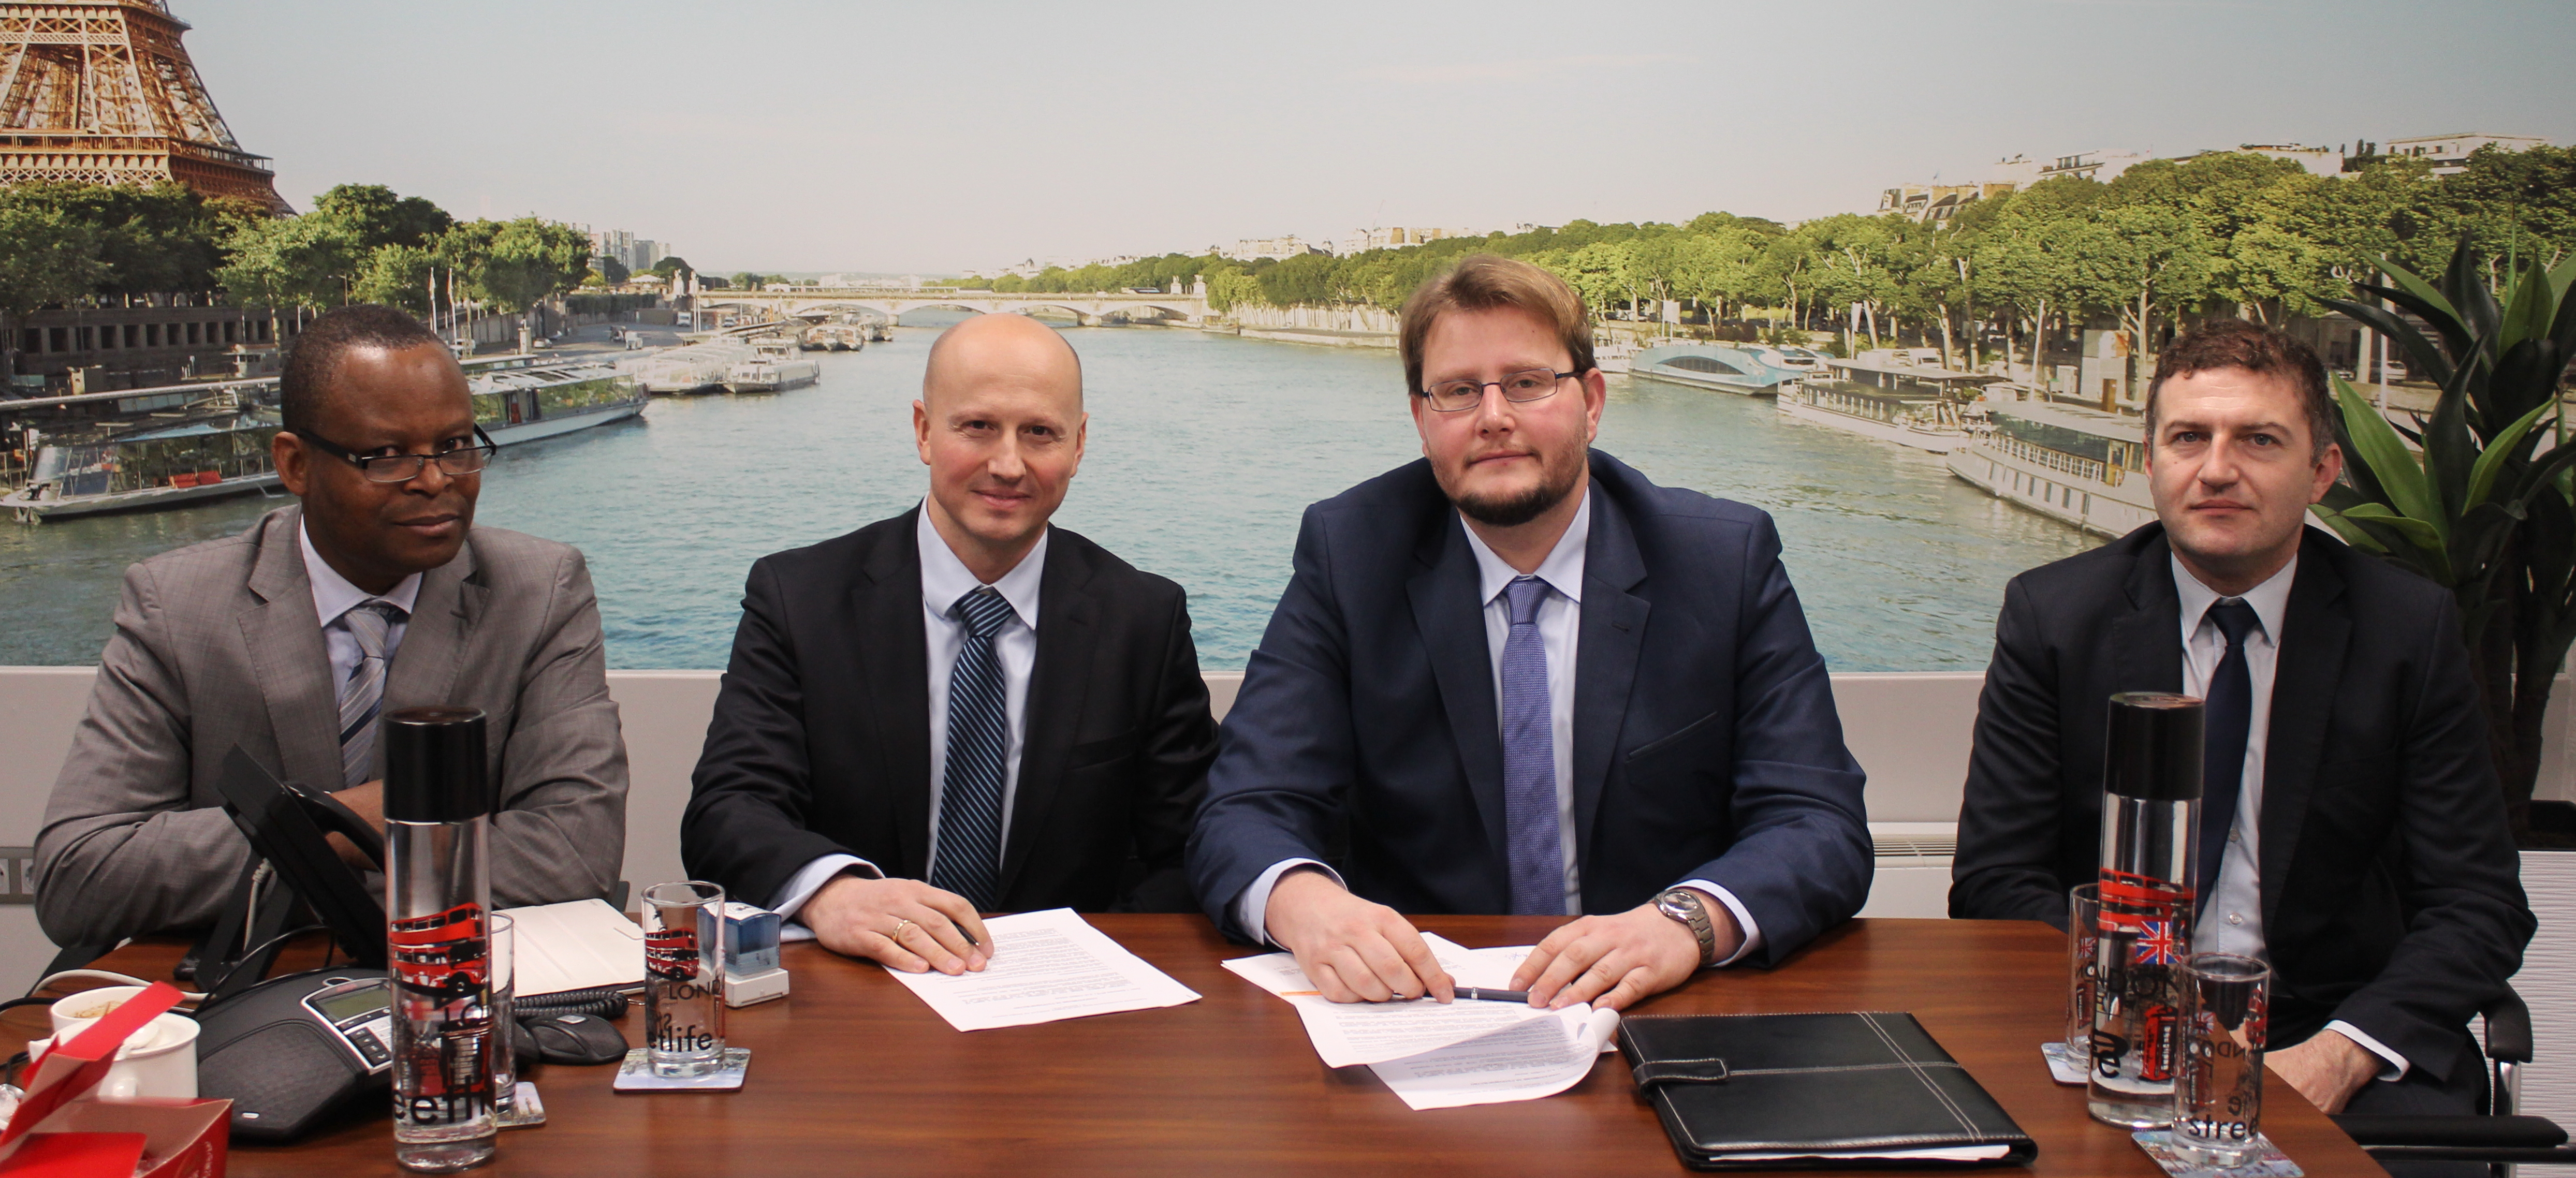 SORTIS Invest Signed a Strategic Partnership with the Faculty of Economics and Business Administration at Sofia University